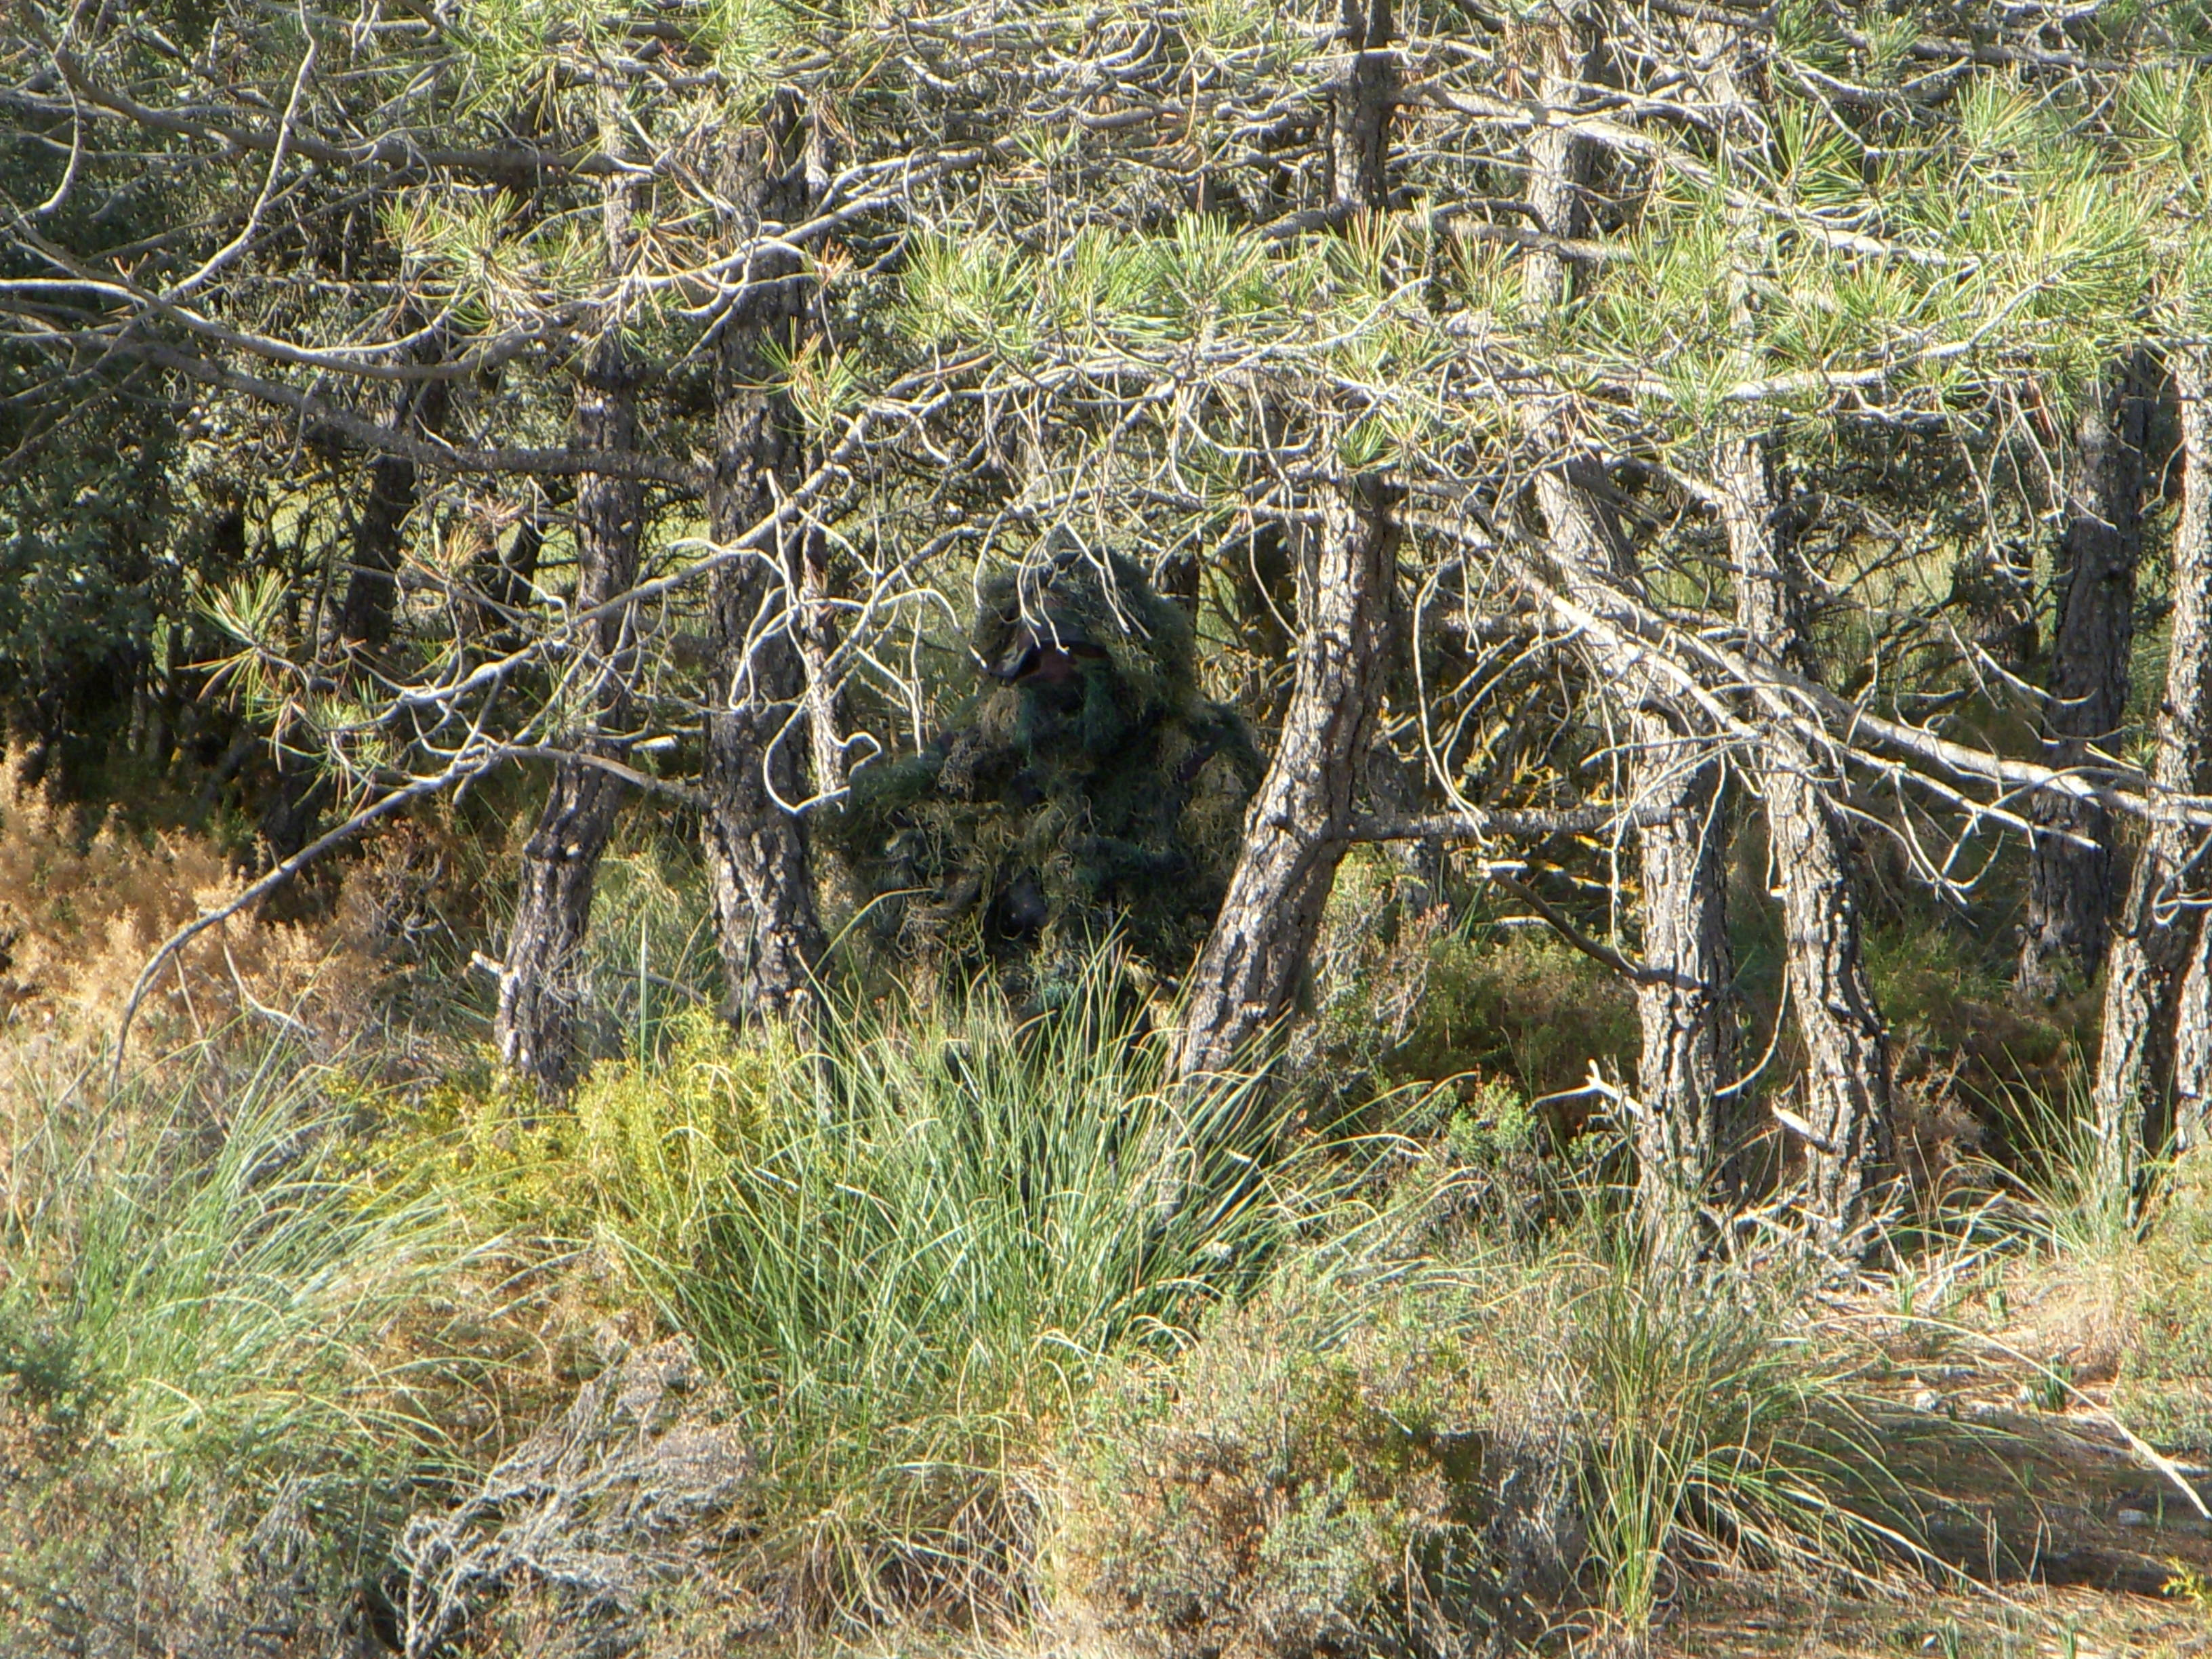 72 Ghillie Suit Wallpapers On Wallpaperplay: Wikimedia Commons